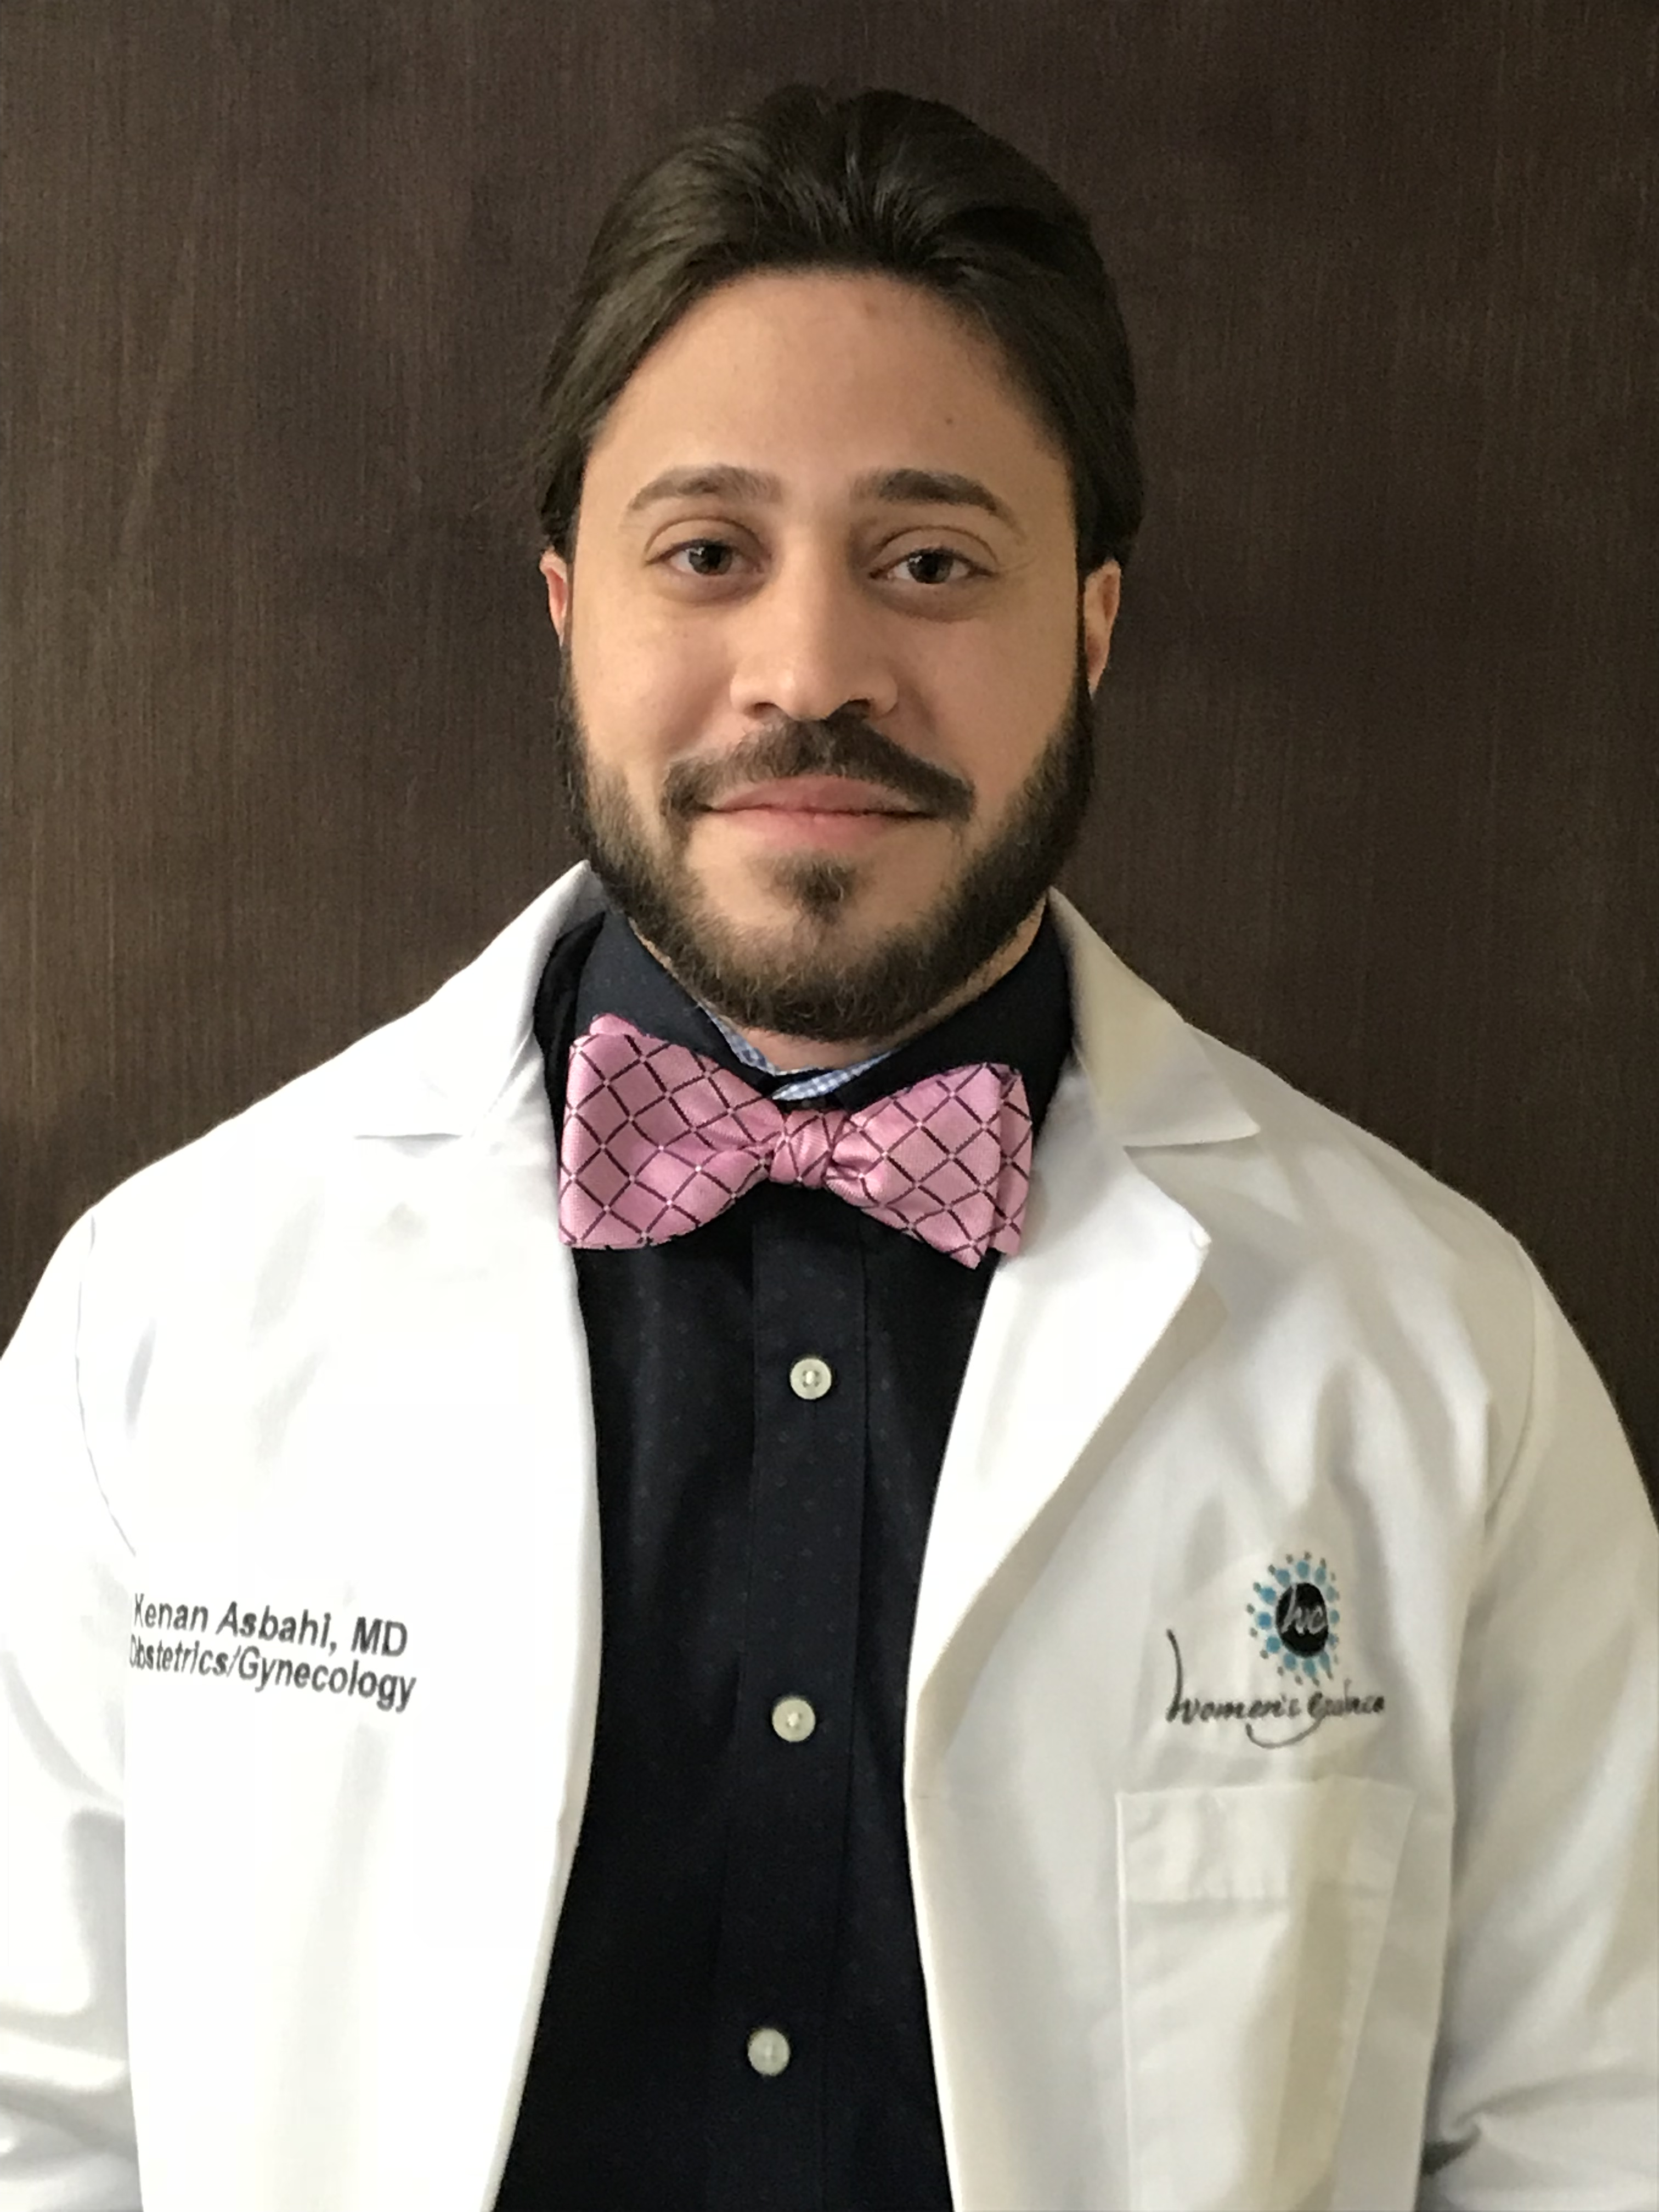 Ross School Of Medicine >> Women's Excellence Welcomes Kenan Asbahi, MD